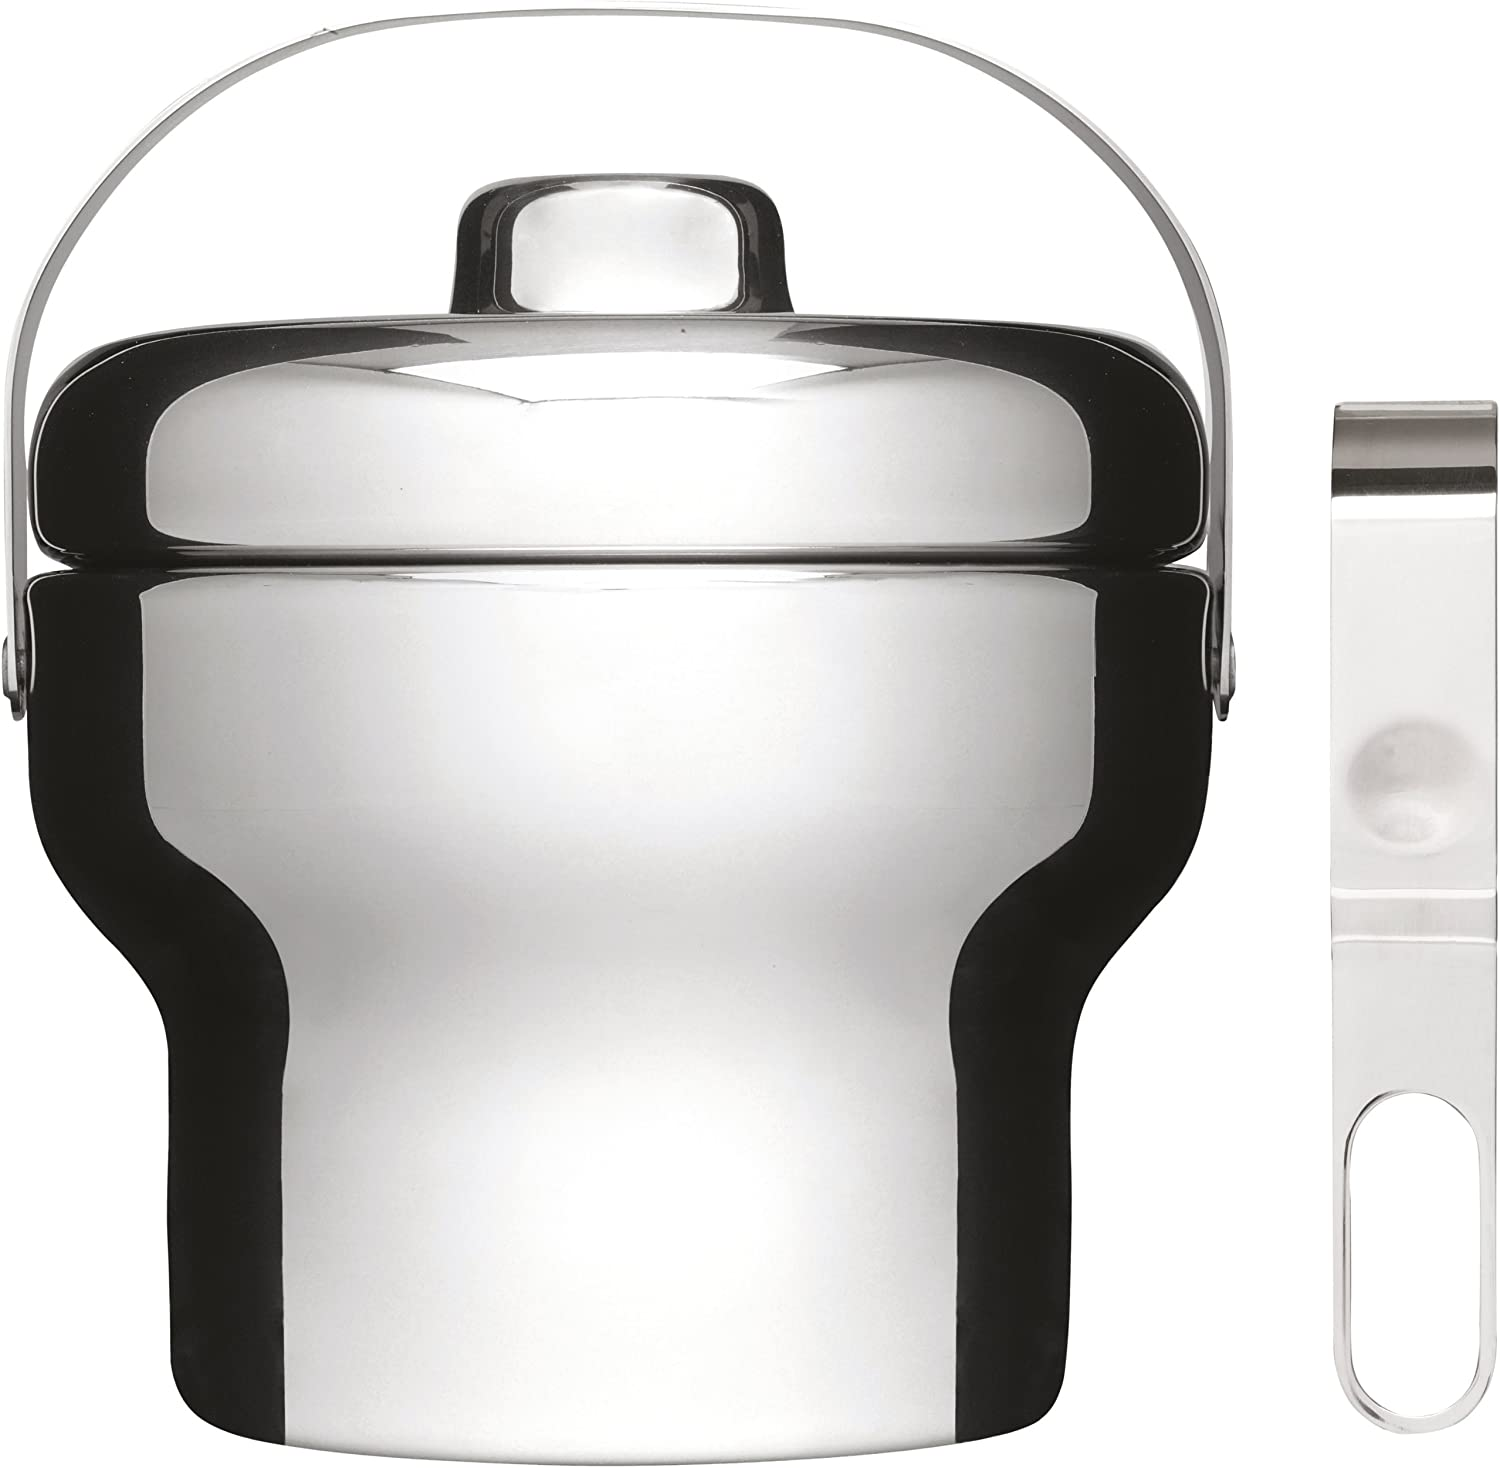 Sagaform Stainless Steel Ice Bucket Tong Set with Super beauty product Milwaukee Mall restock quality top